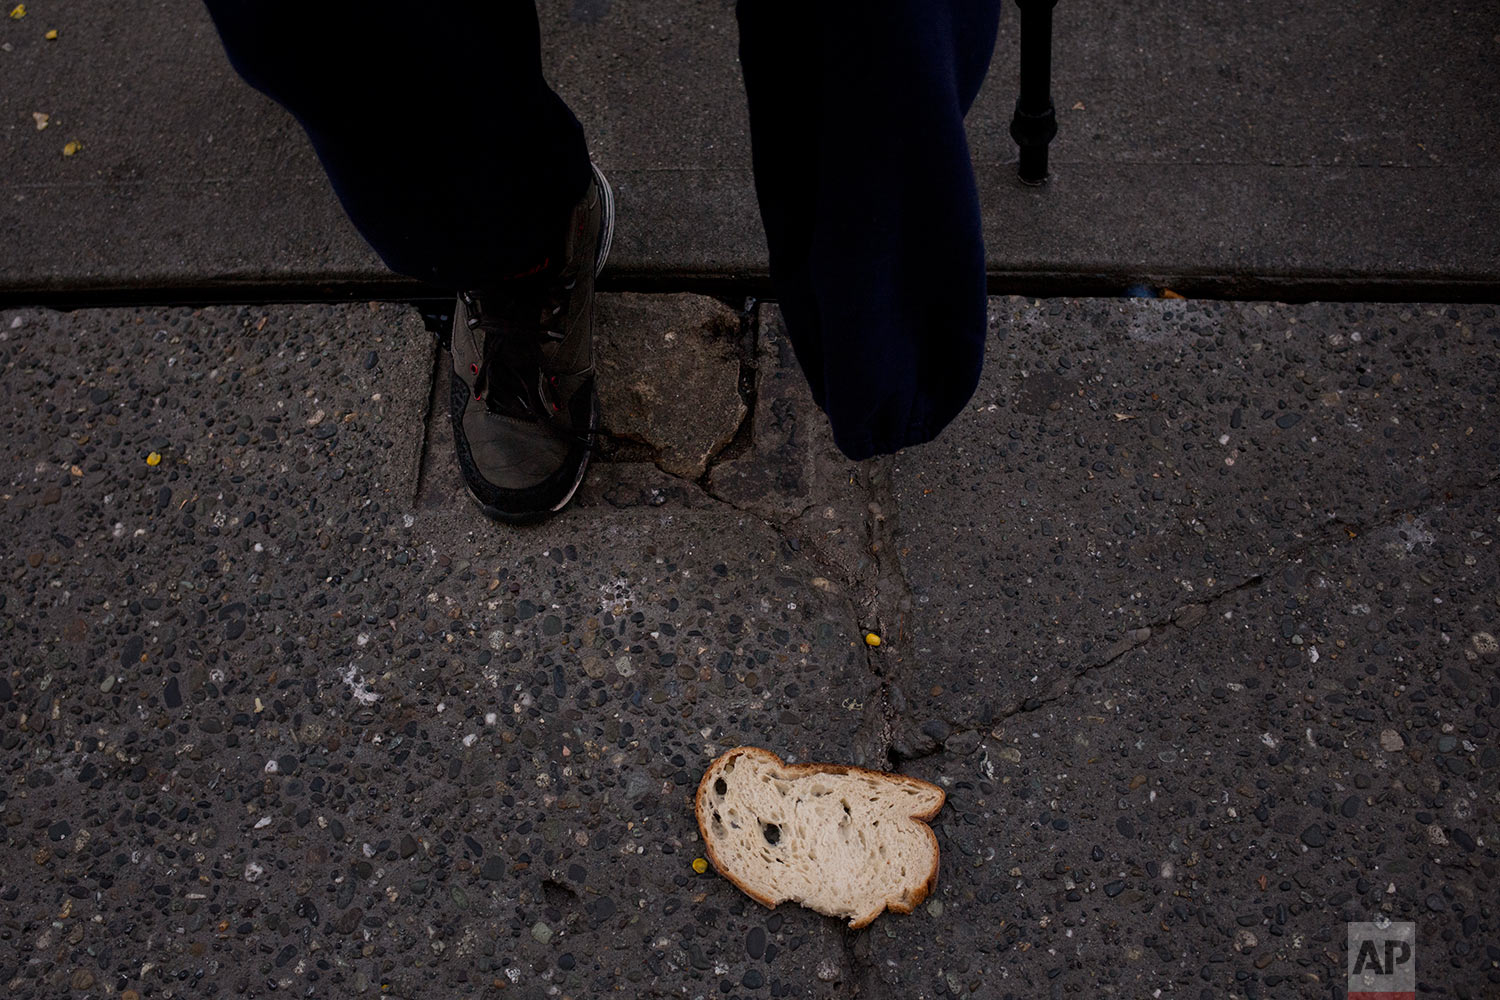 "A piece of bread is left on a sidewalk as Korey Epps, a 44-year-old homeless man who had his leg amputated due to an infection while in jail, waits in line to enter Seattle's Union Gospel Mission to spend the night at the shelter Wednesday, Sept. 27, 2017, in Seattle. Serving 14 months in jail, Epps said he lost his job, family and home. ""Everyday I feel more more worthless, hopeless. I can't believe this is where my life is,"" said Epps. ""I may as well be on drugs because I lost everything."" (AP Photo/Jae C. Hong)"